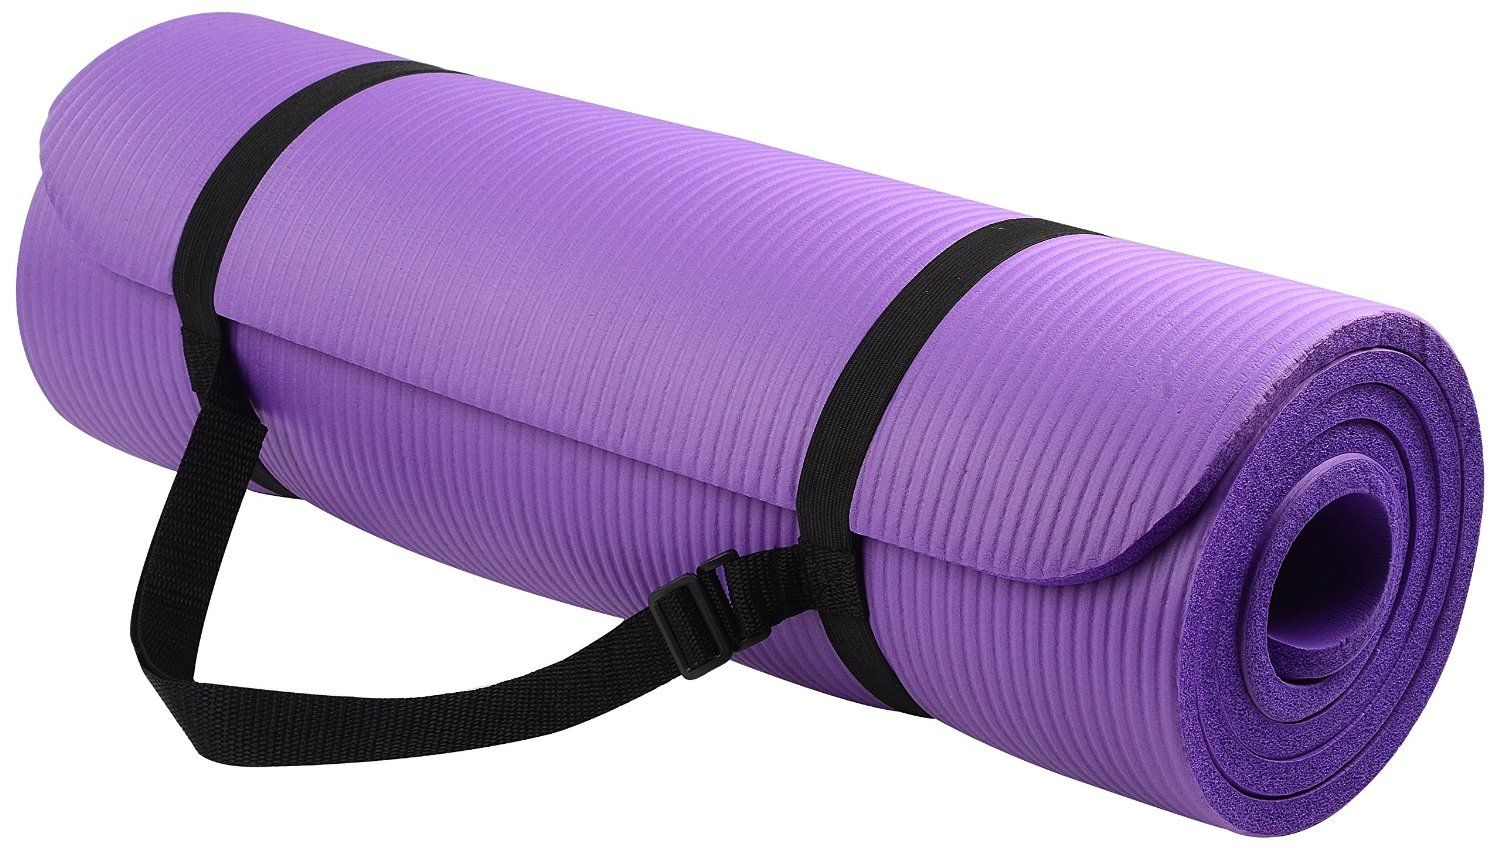 Balancefrom Goyoga All Purpose 1 2 Inch Extra Thick High Density Anti Tear Exercise Yoga Mat With Carrying Strap Yoga Mats Best Yoga Fitness Mat Exercises